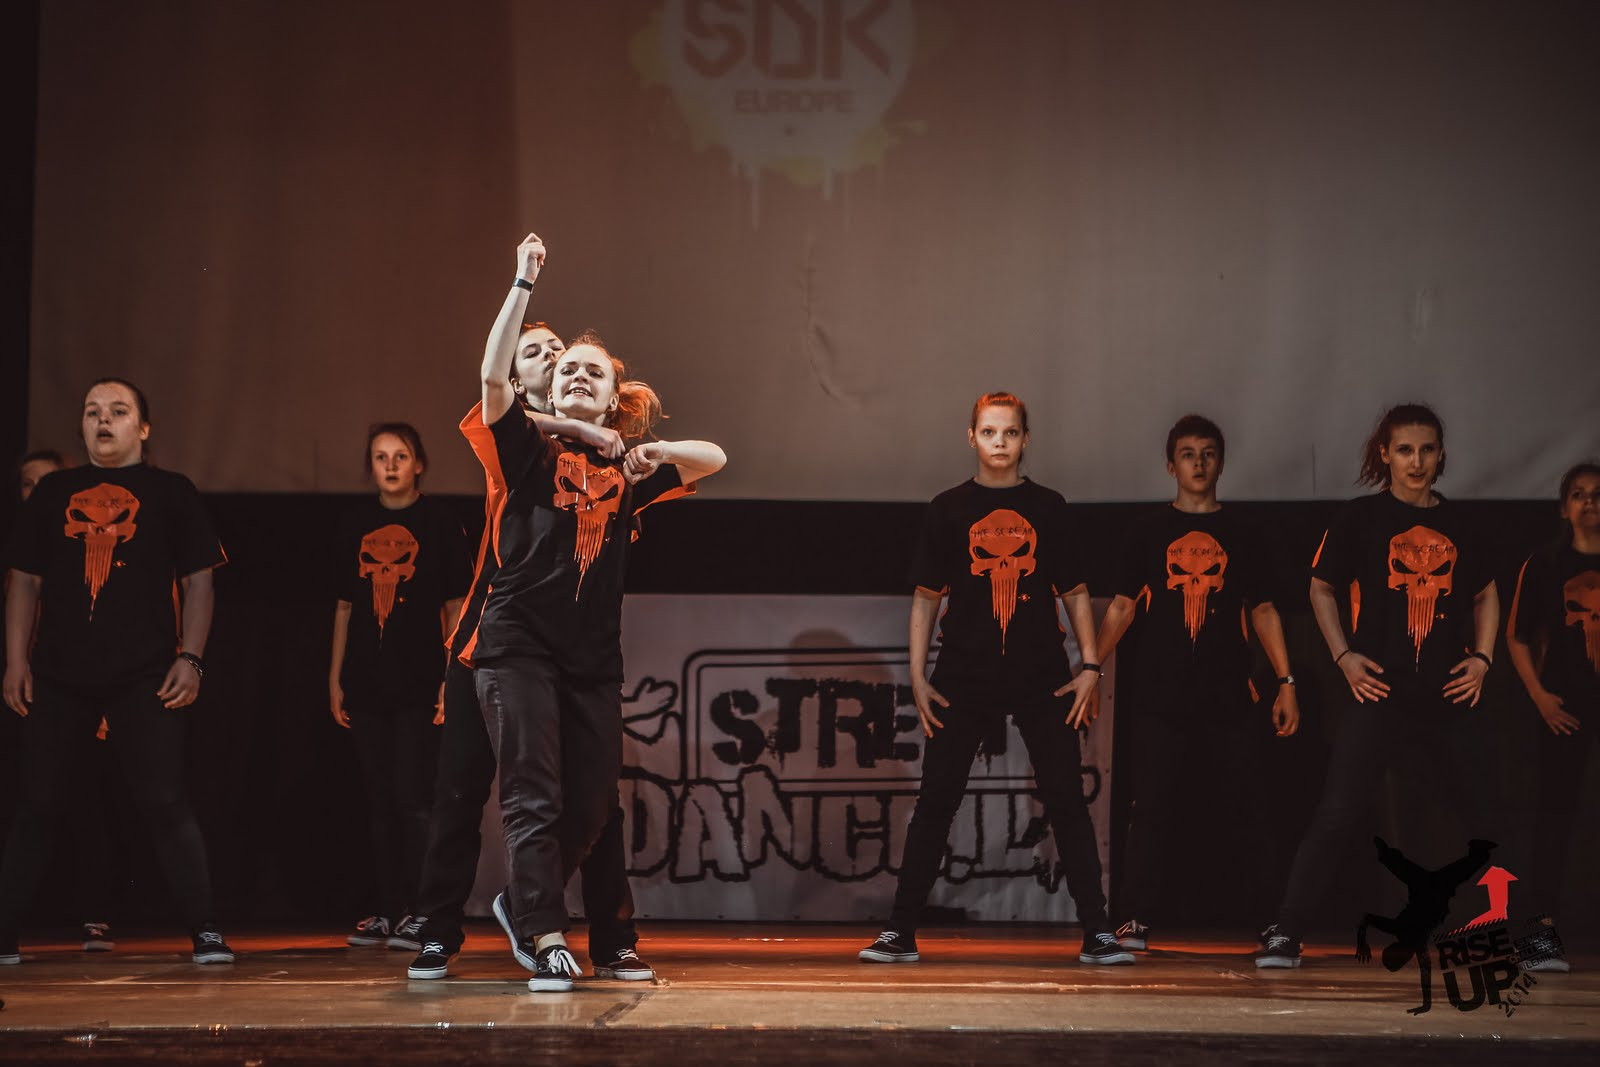 SKILLZ at RISEUP 2014 - _MG_7565.jpg